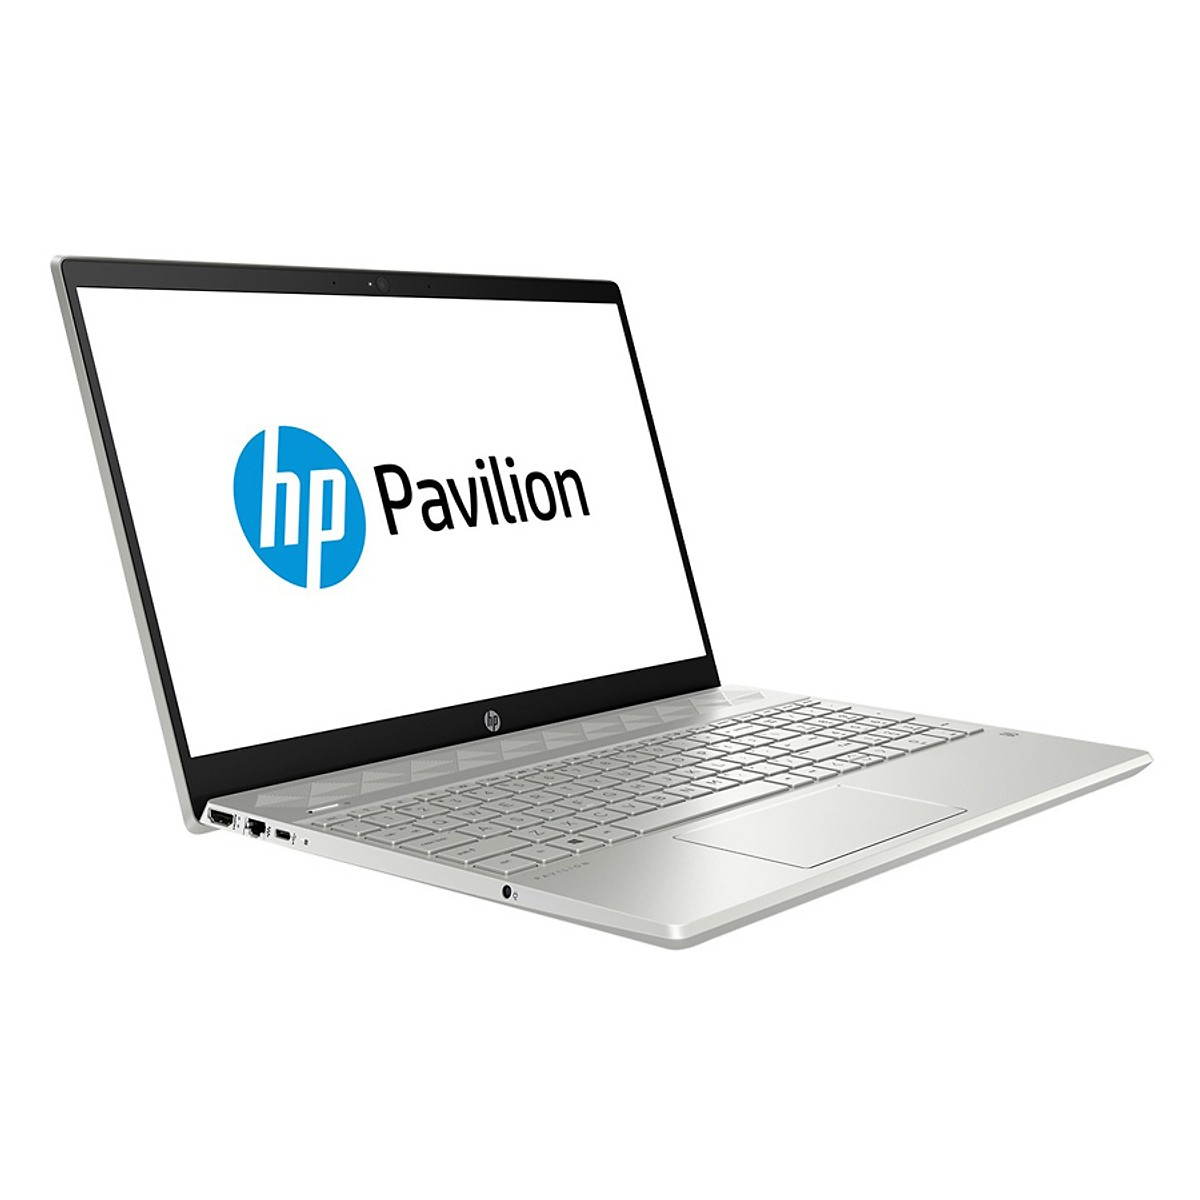 HP Pavilion 15-CS2057TX, Core i5-8265U, 1TB, 4GB, 2GB MX130, 15.6in FHD, Win 10.